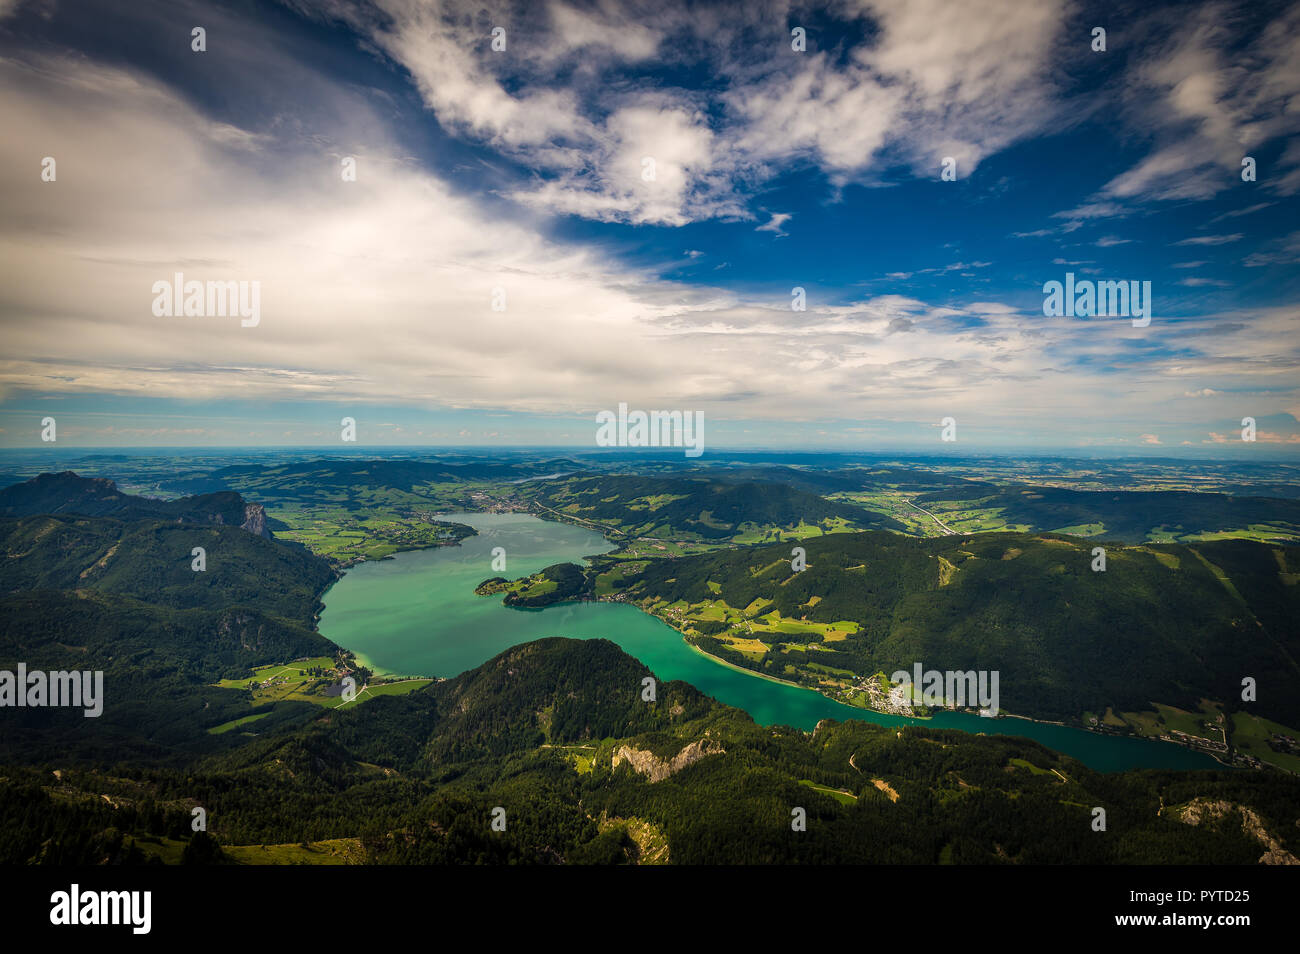 Mountain landscape on the top of the hiking trail to the Schafberg and view of landscape over Mondsee Stock Photo